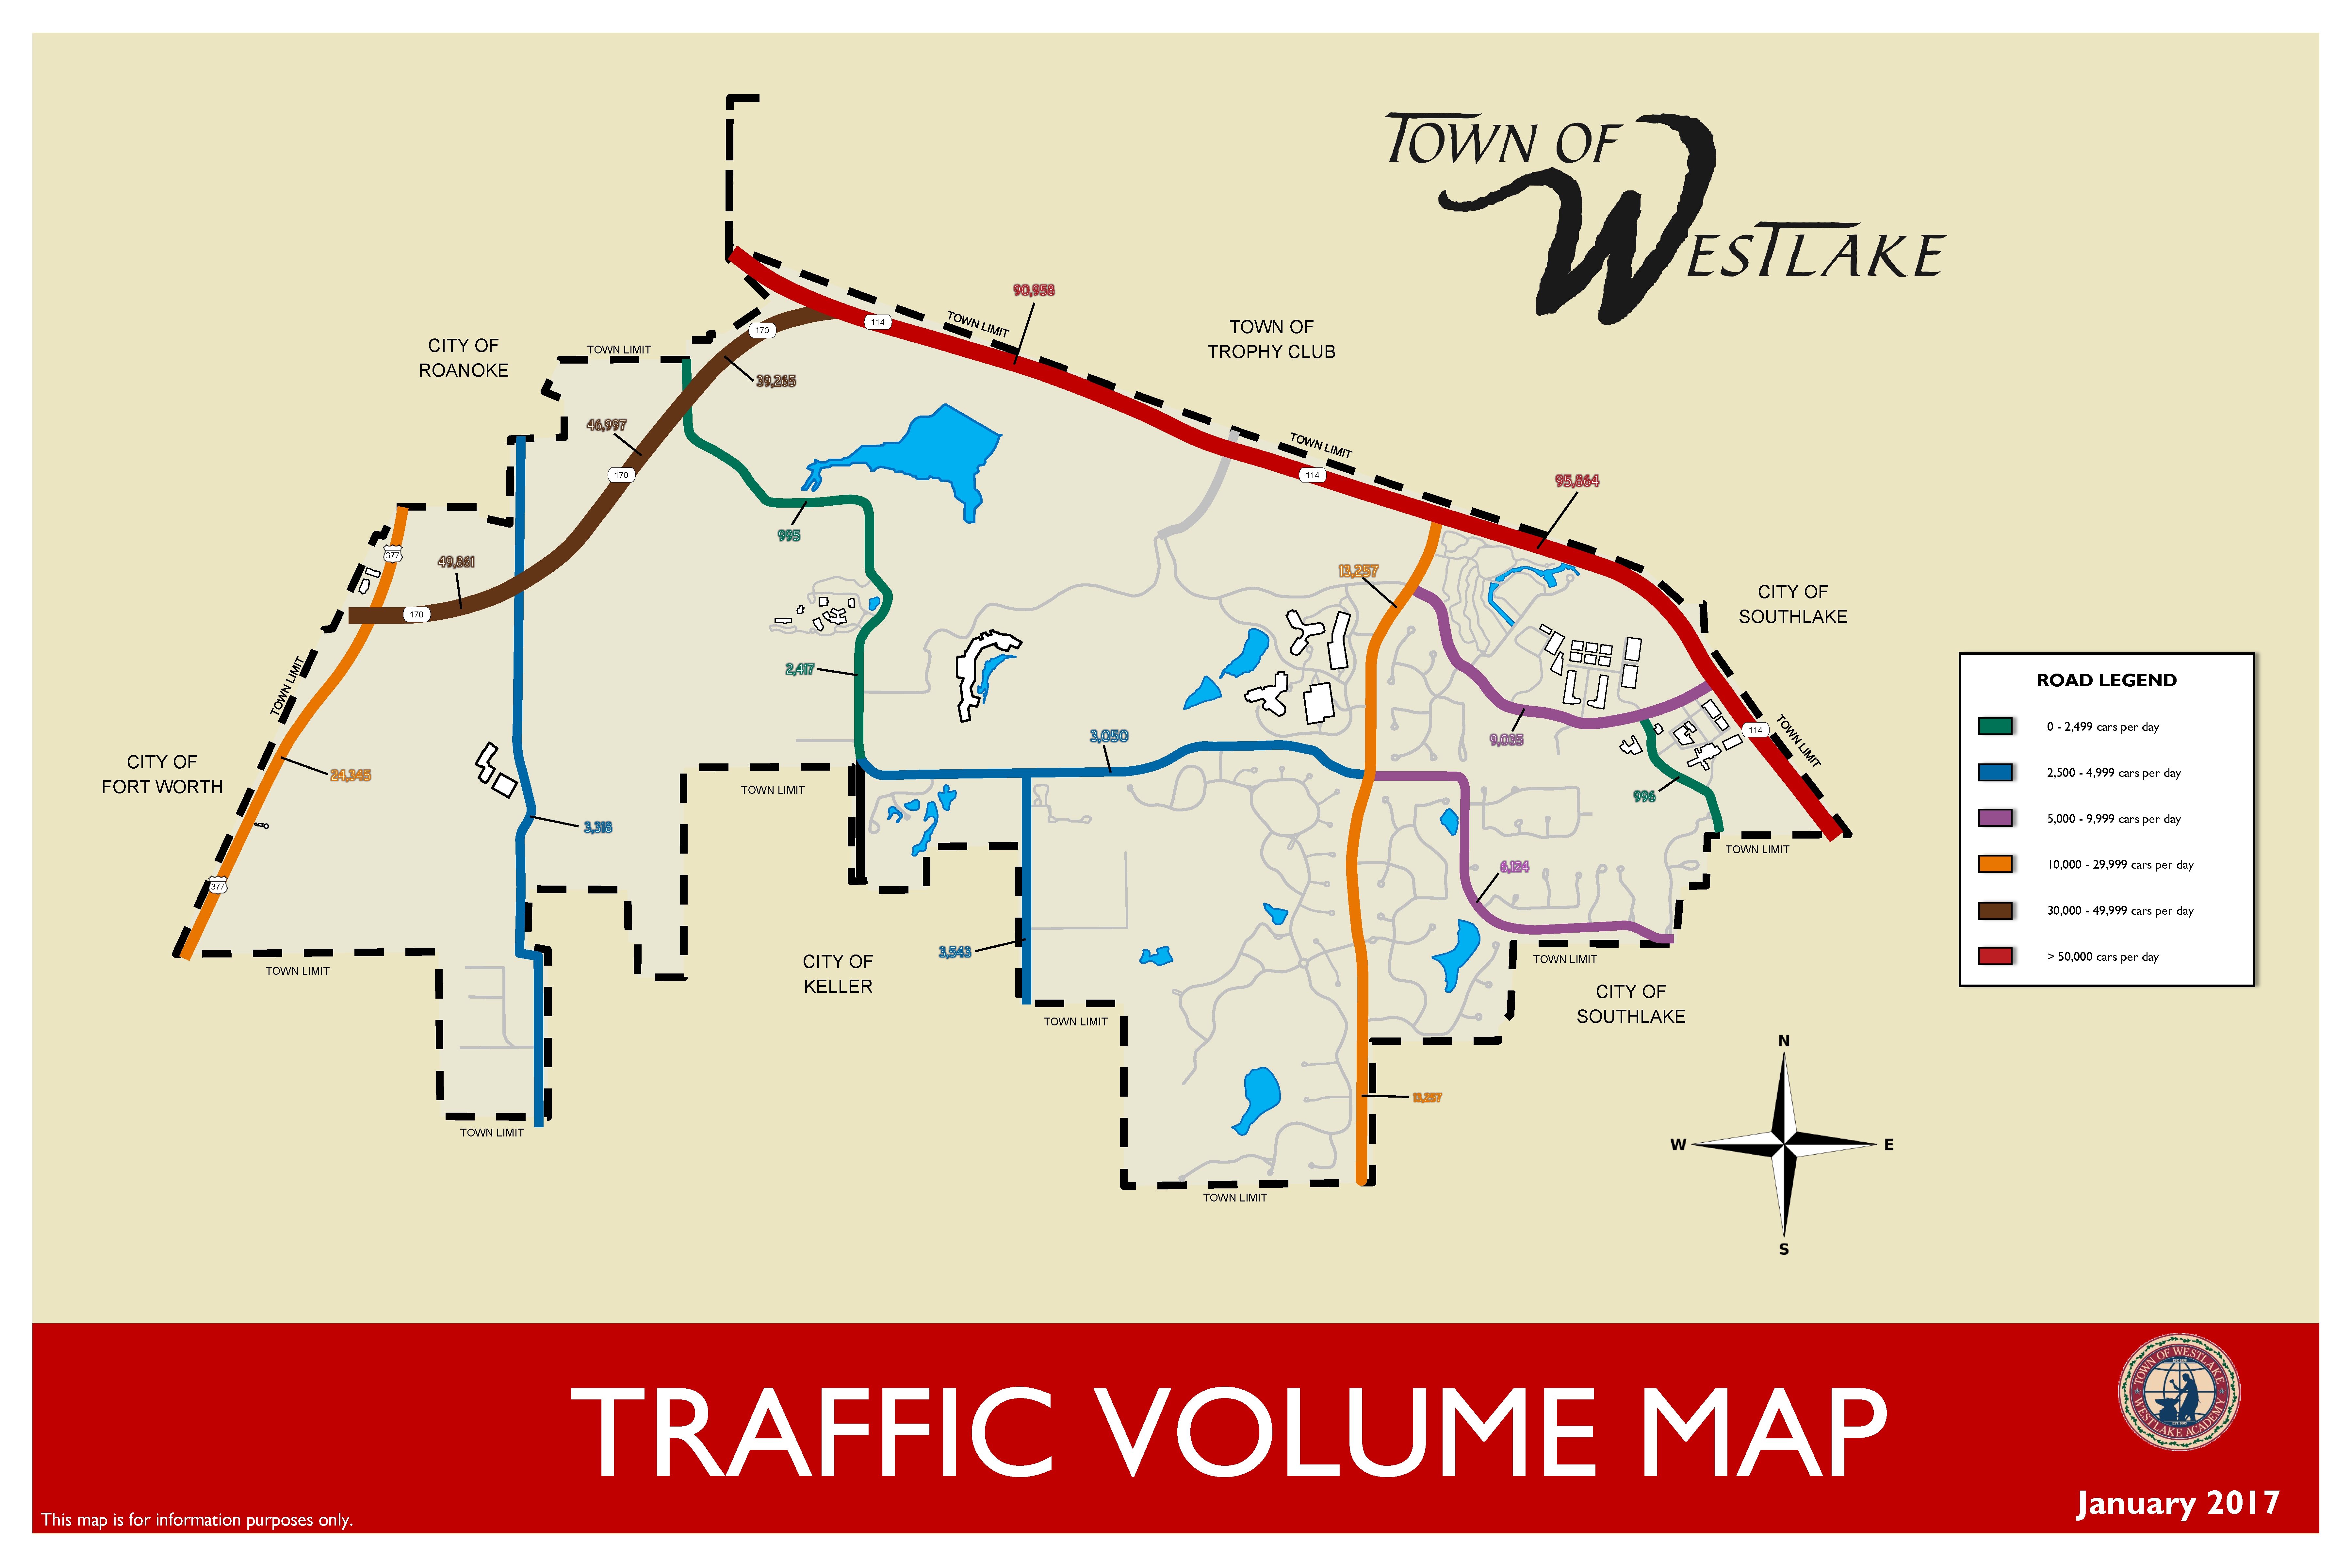 Traffic Volume Map